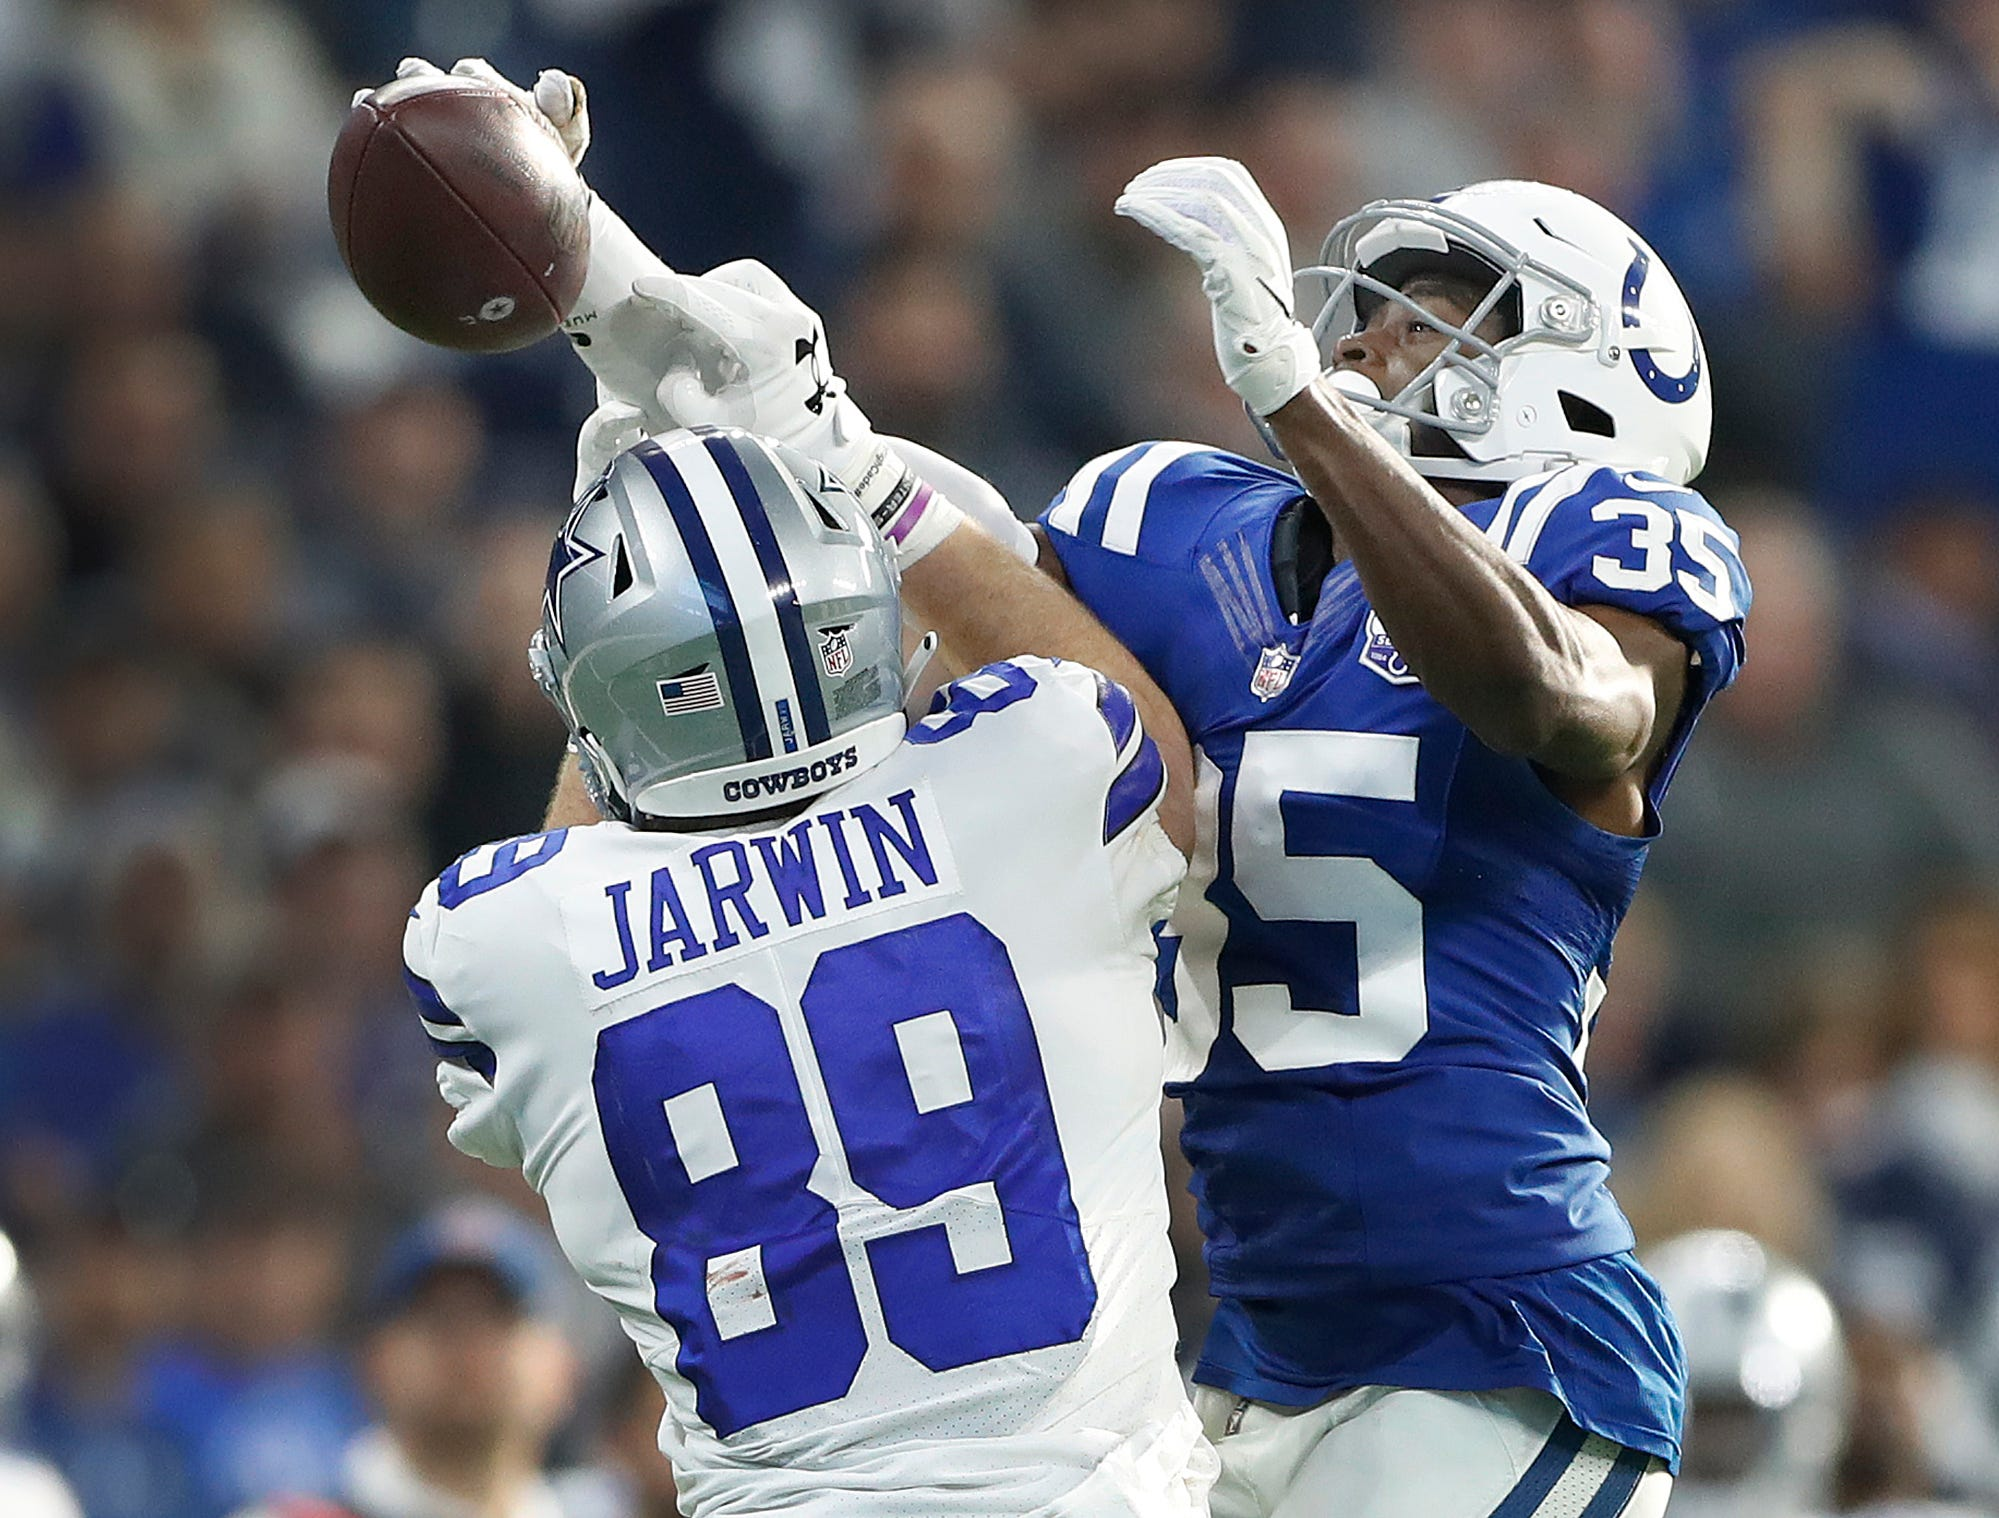 Indianapolis Colts cornerback Pierre Desir (35) breaks up a pass intended for Dallas Cowboys tight end Blake Jarwin (89) in the second half of their game at Lucas Oil Stadium on Sunday, Dec. 16, 2018. The Colts shut-out the Cowboys 23-0.